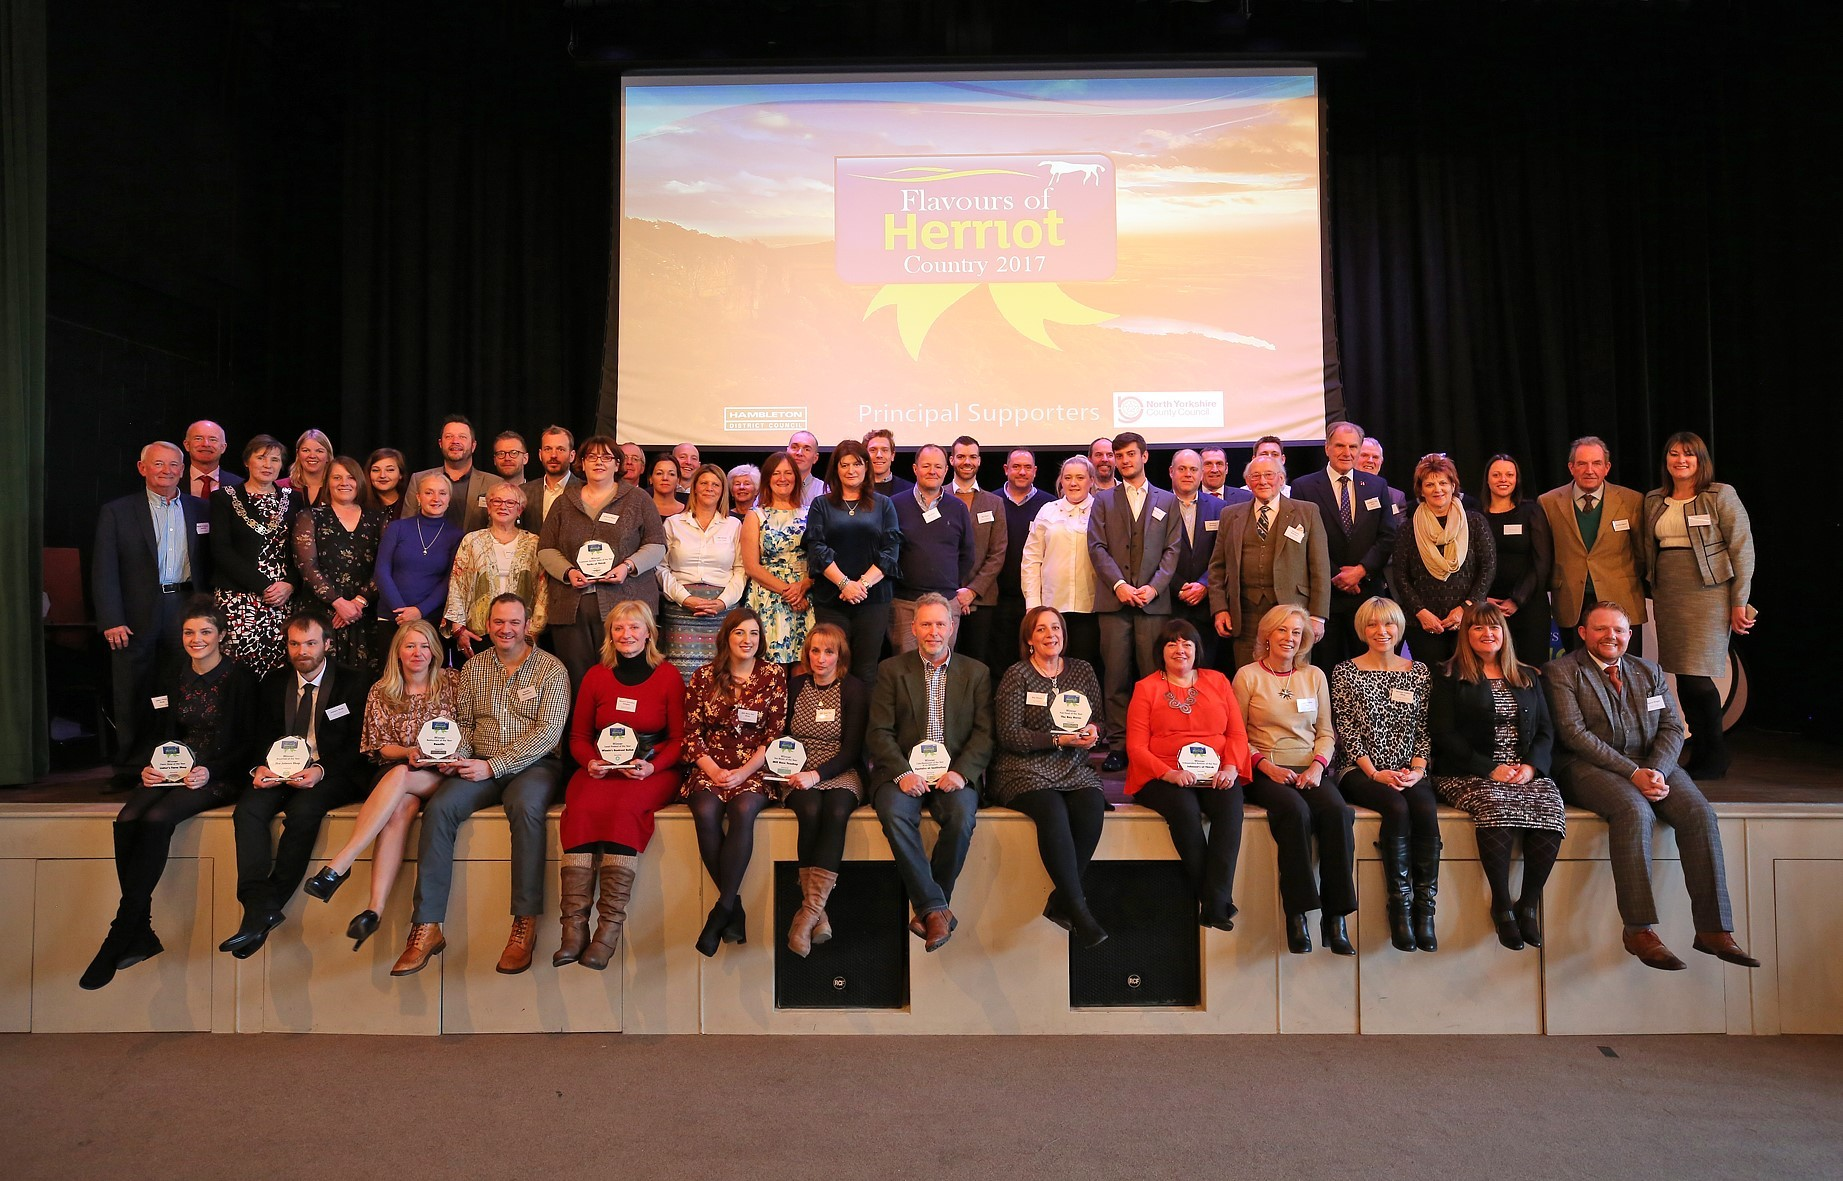 Finalists unveiled for the 2018 Flavours of Herriot Country Awards – Vote for your favourite to win the Reader's Choice Awards